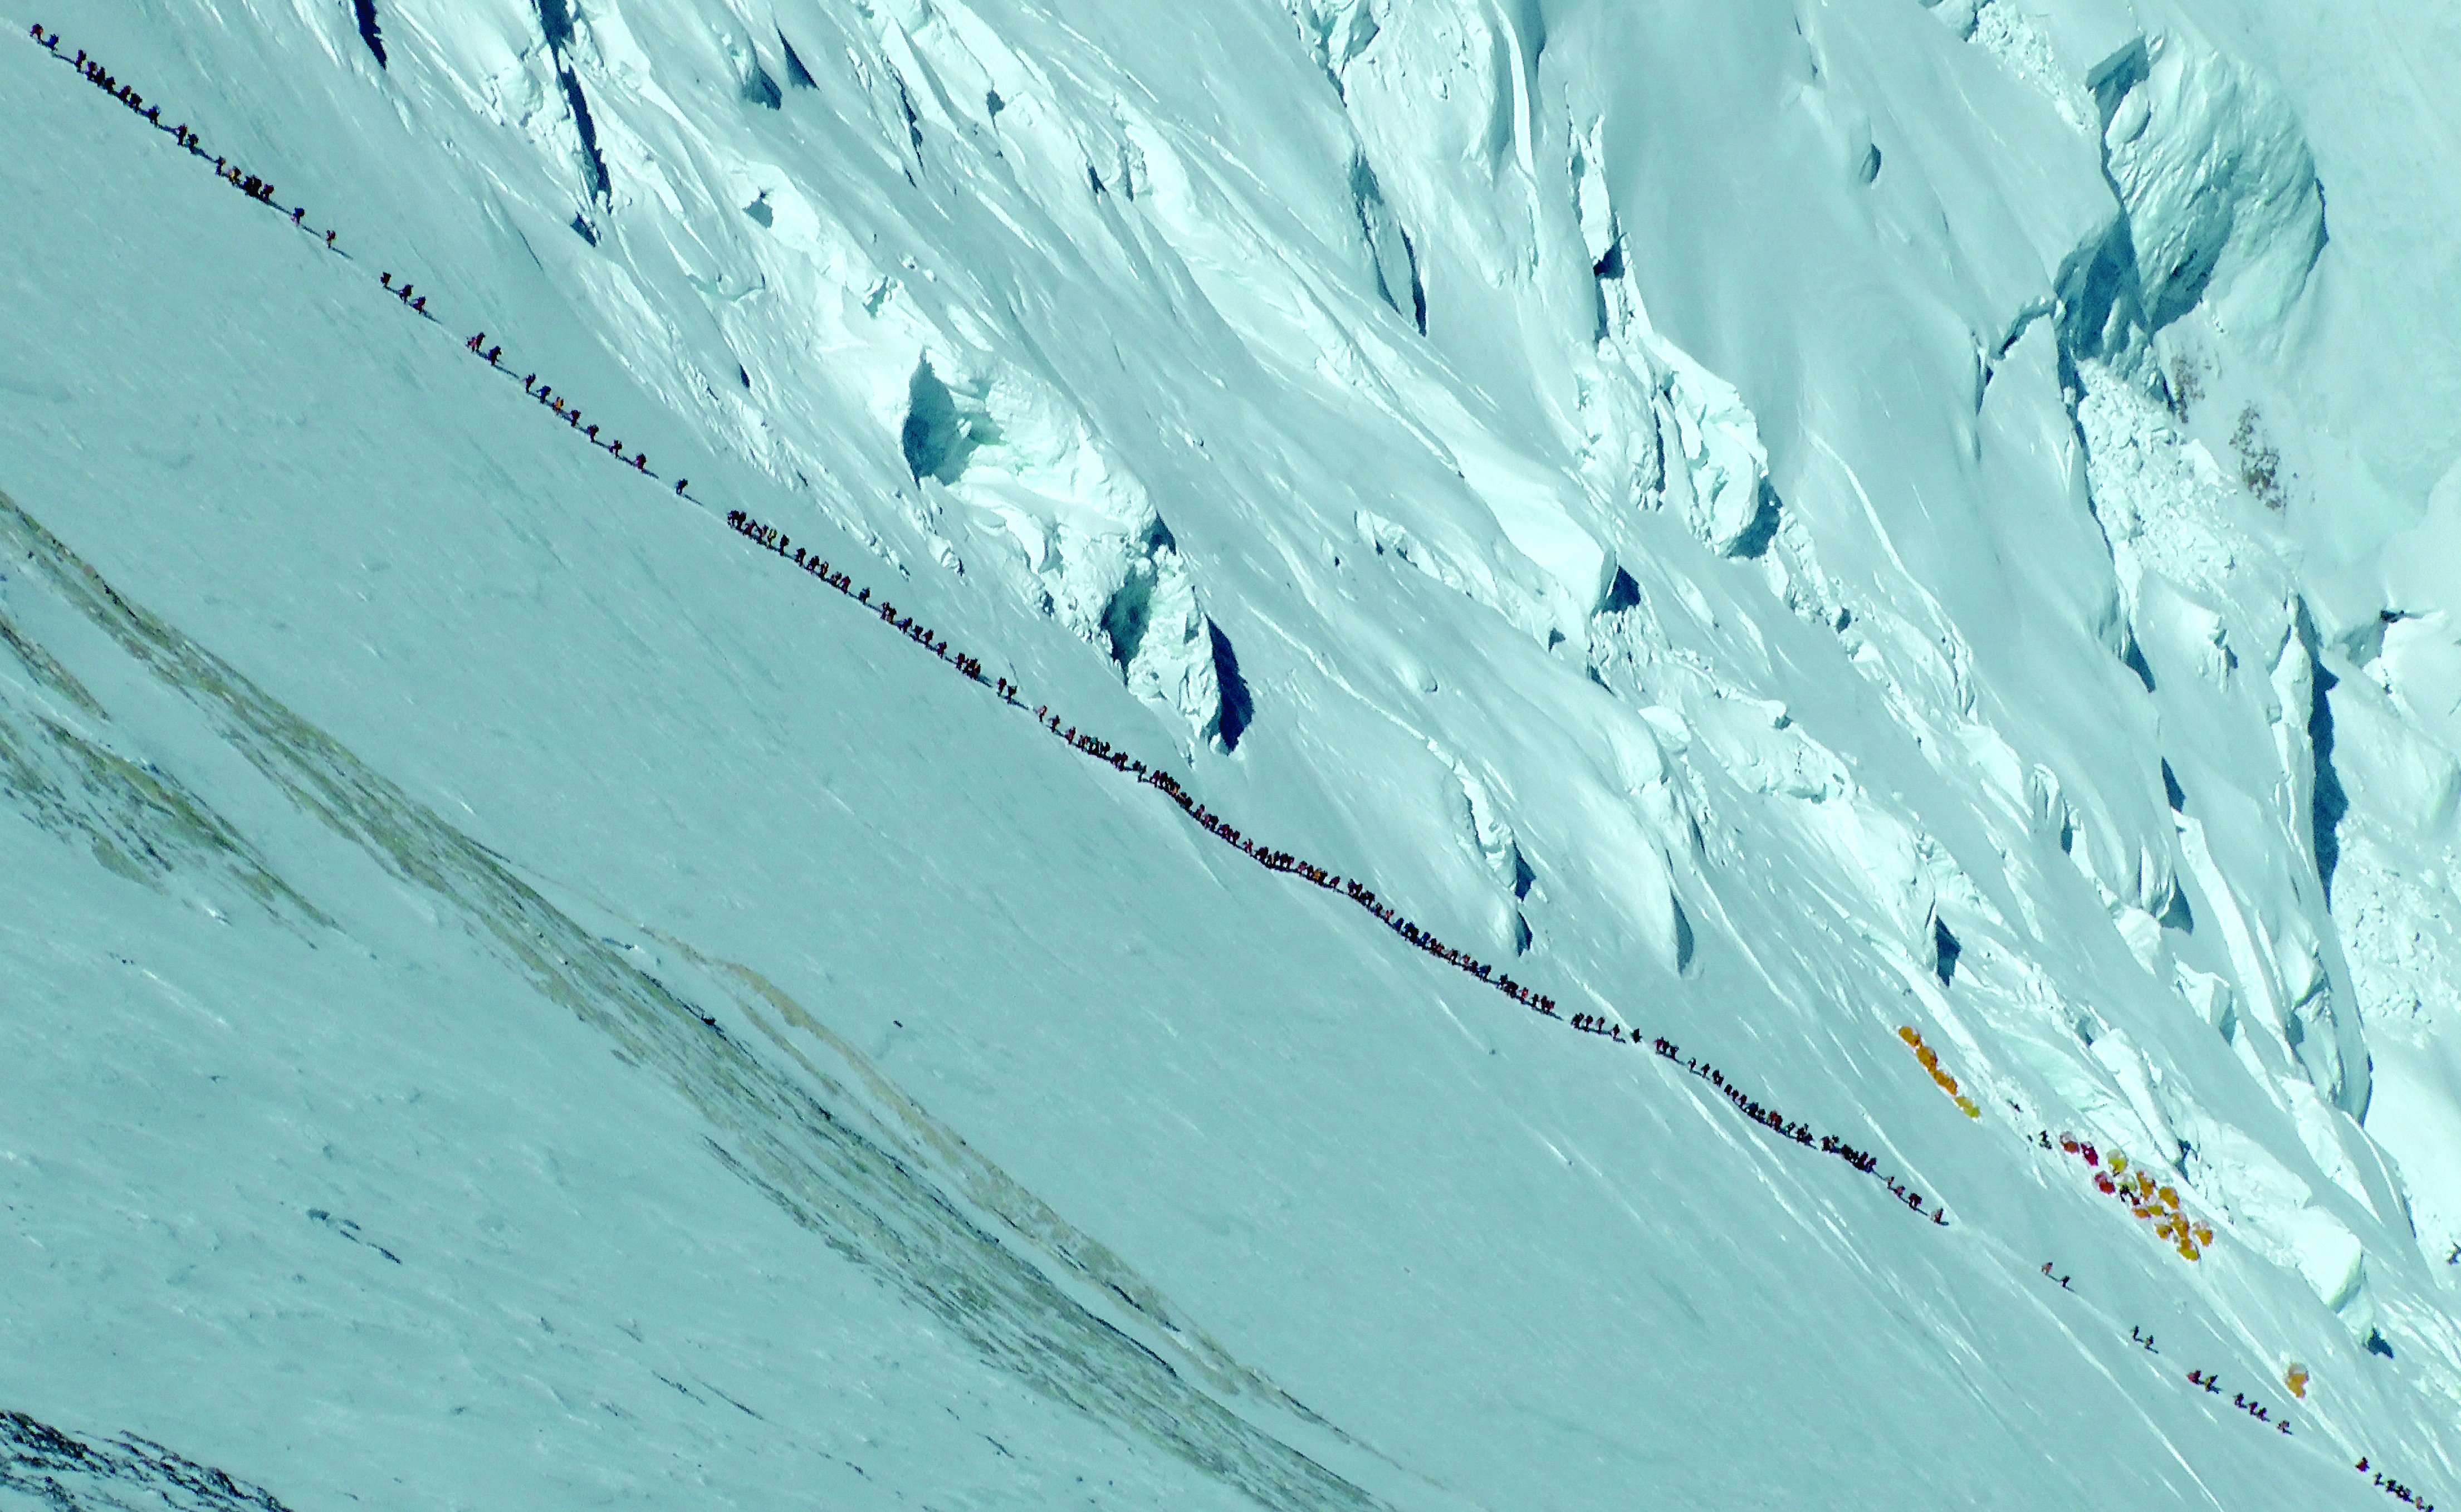 long lines of people on mountain